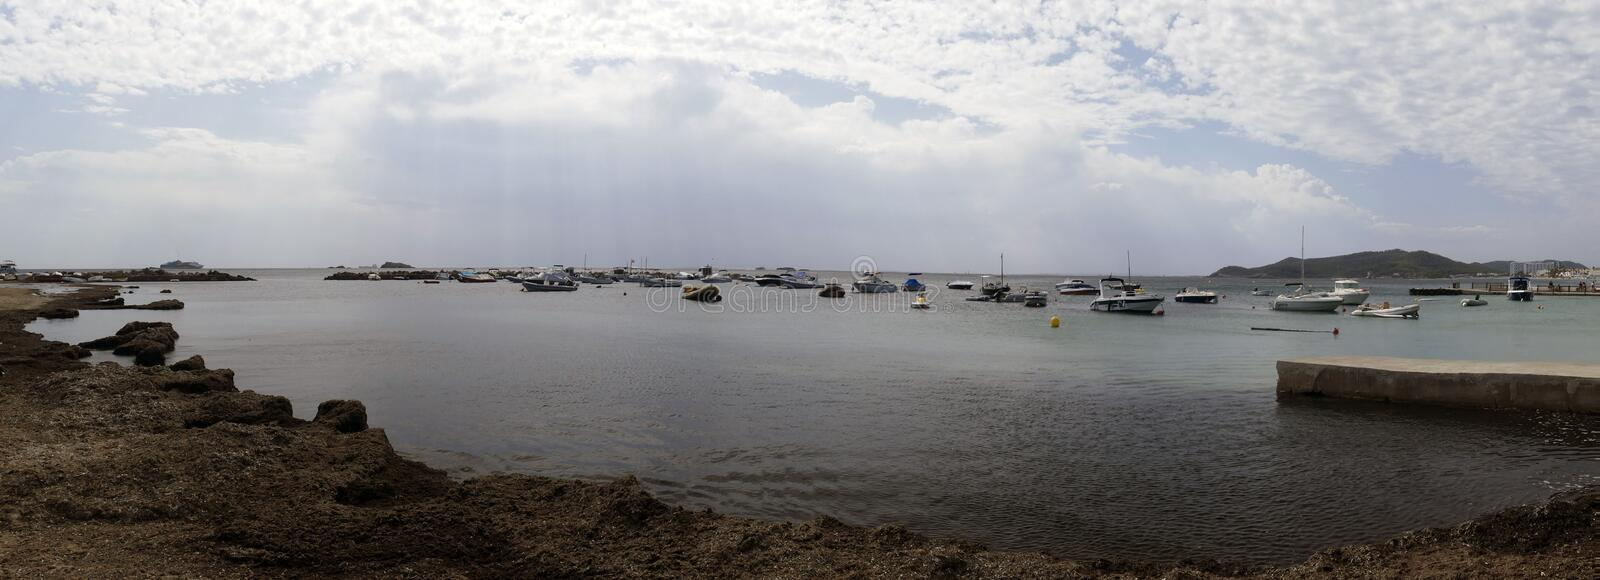 Several little boats are anchored of the coast royalty free stock images